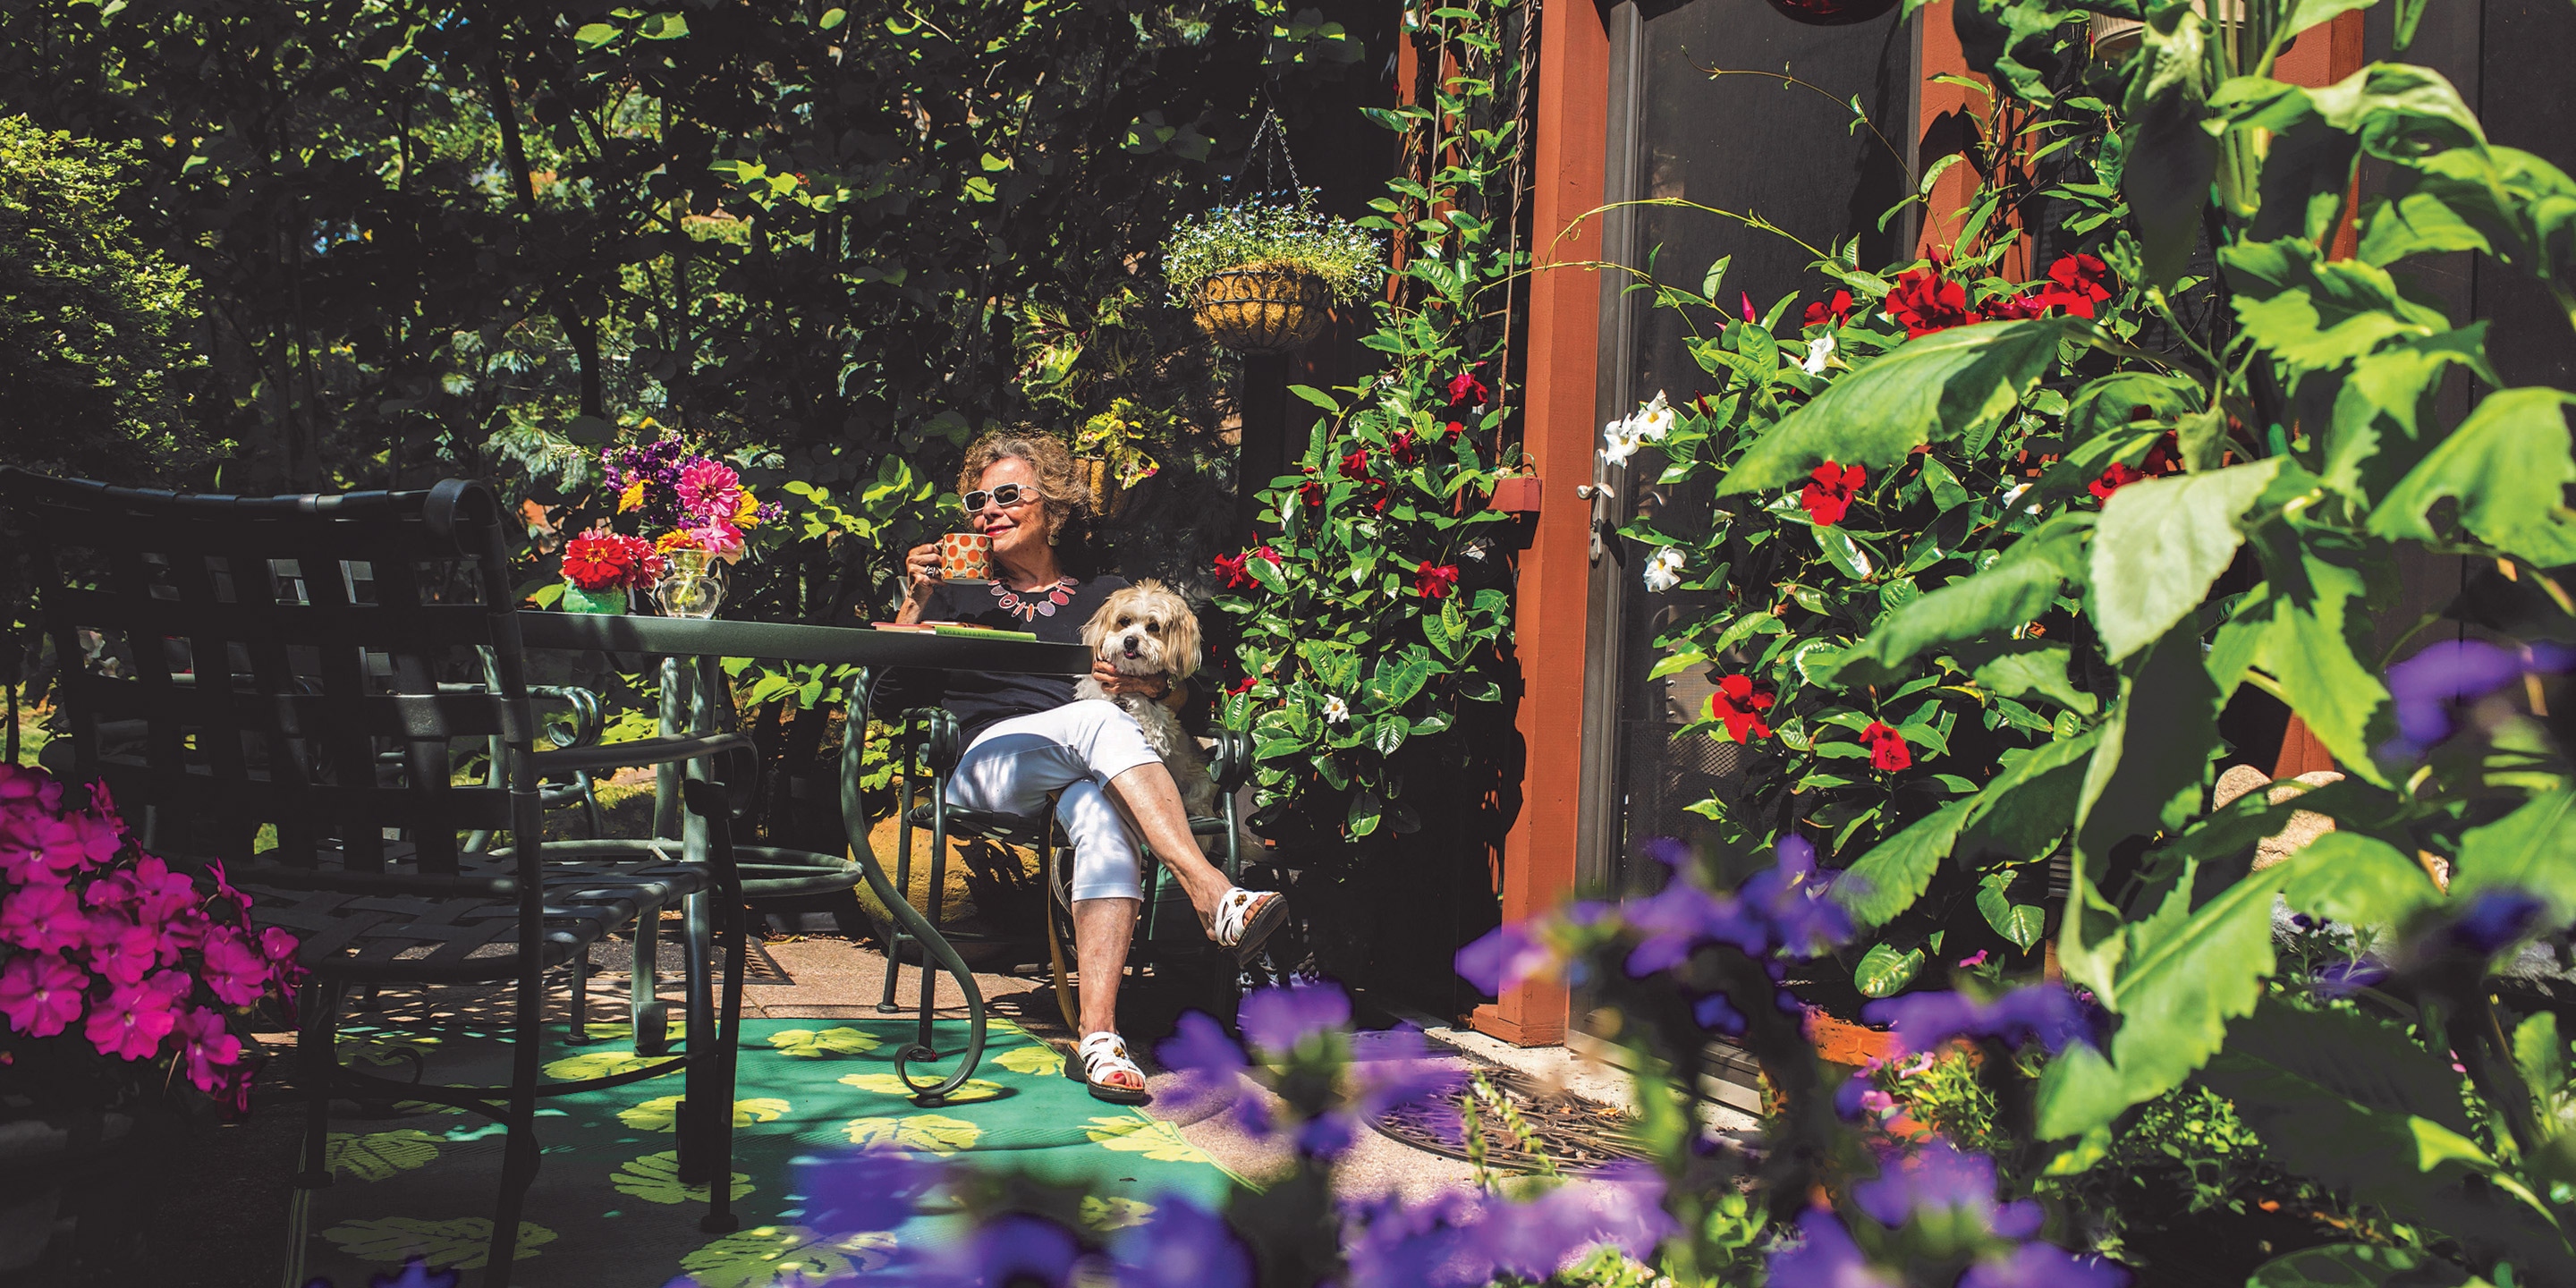 A female NewBridge resident sits in a garden with her dog.